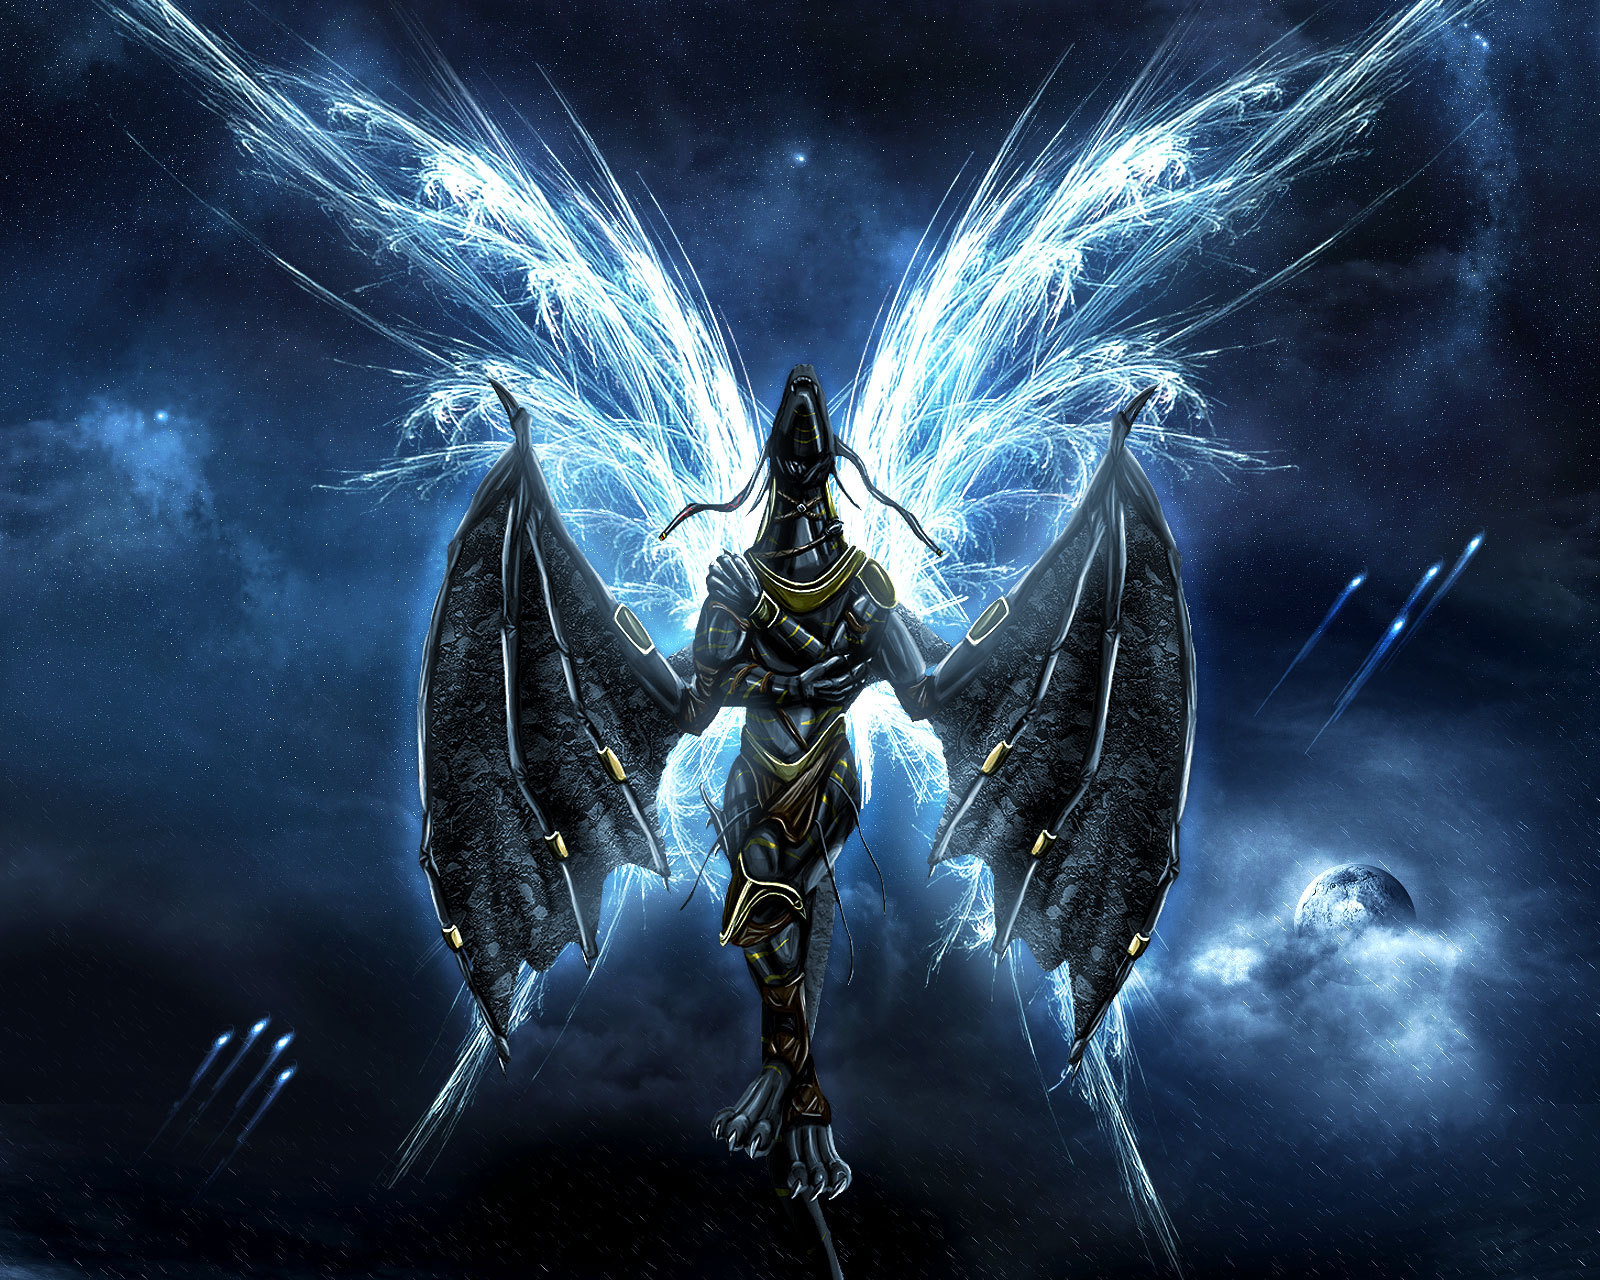 Fallen Angel Wallpaper For Android - Paragonx9 Chaoz Fantasy , HD Wallpaper & Backgrounds